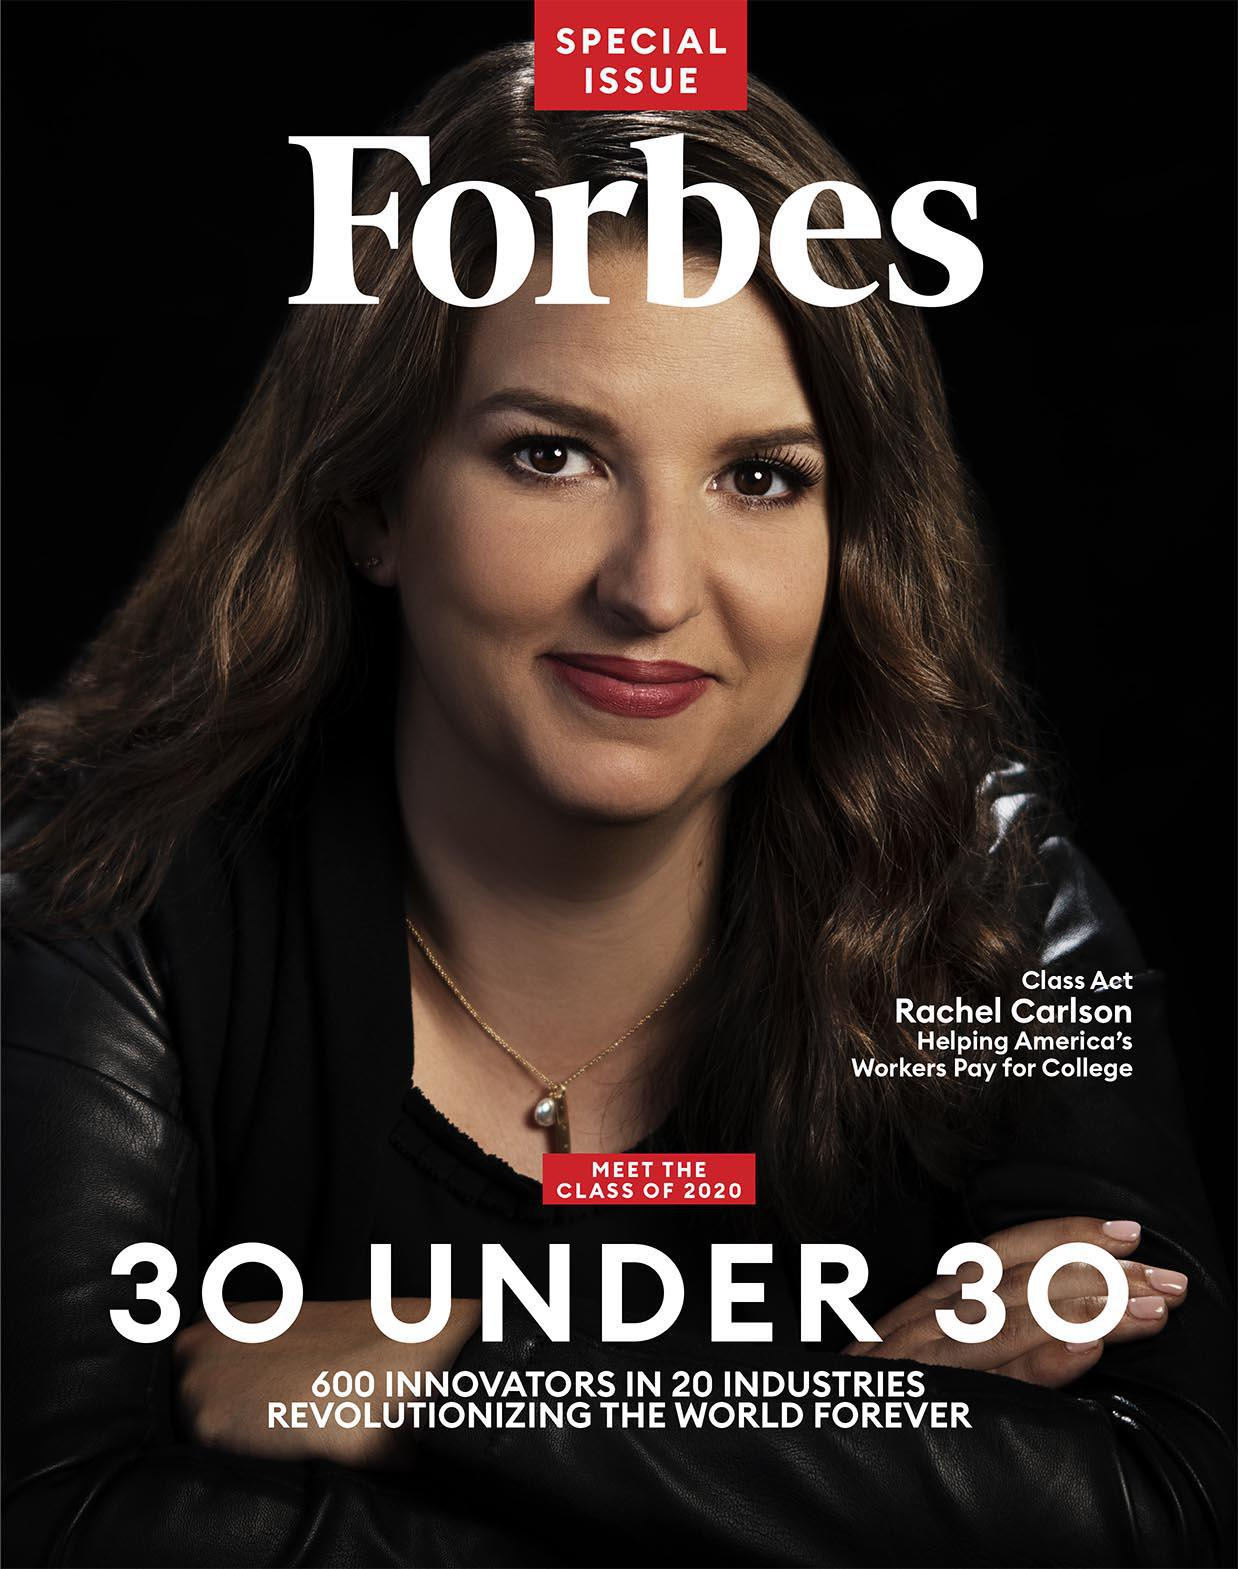 Rachel Carlson appeared as one of the covers of Forbes' Under 30 issue in December 2019 after her education startup was valued at $1 billion.